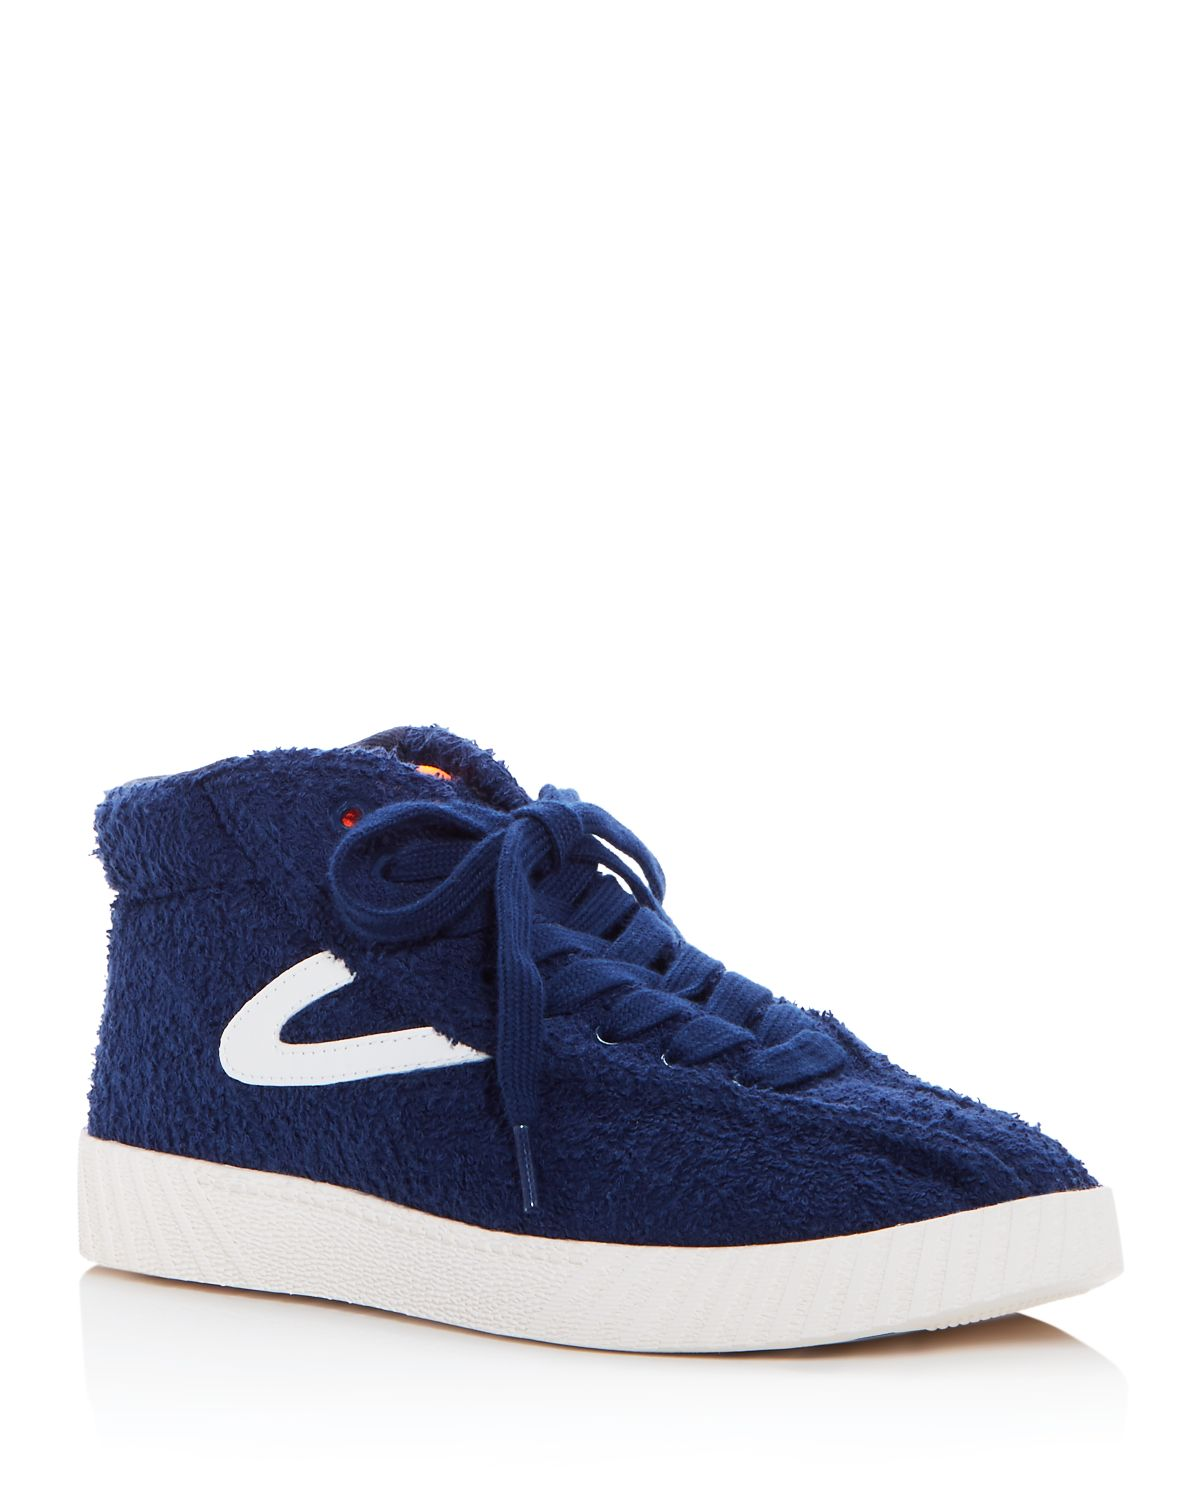 Tretorn Women's Ny Lite Terry Cloth High Top Sneakers